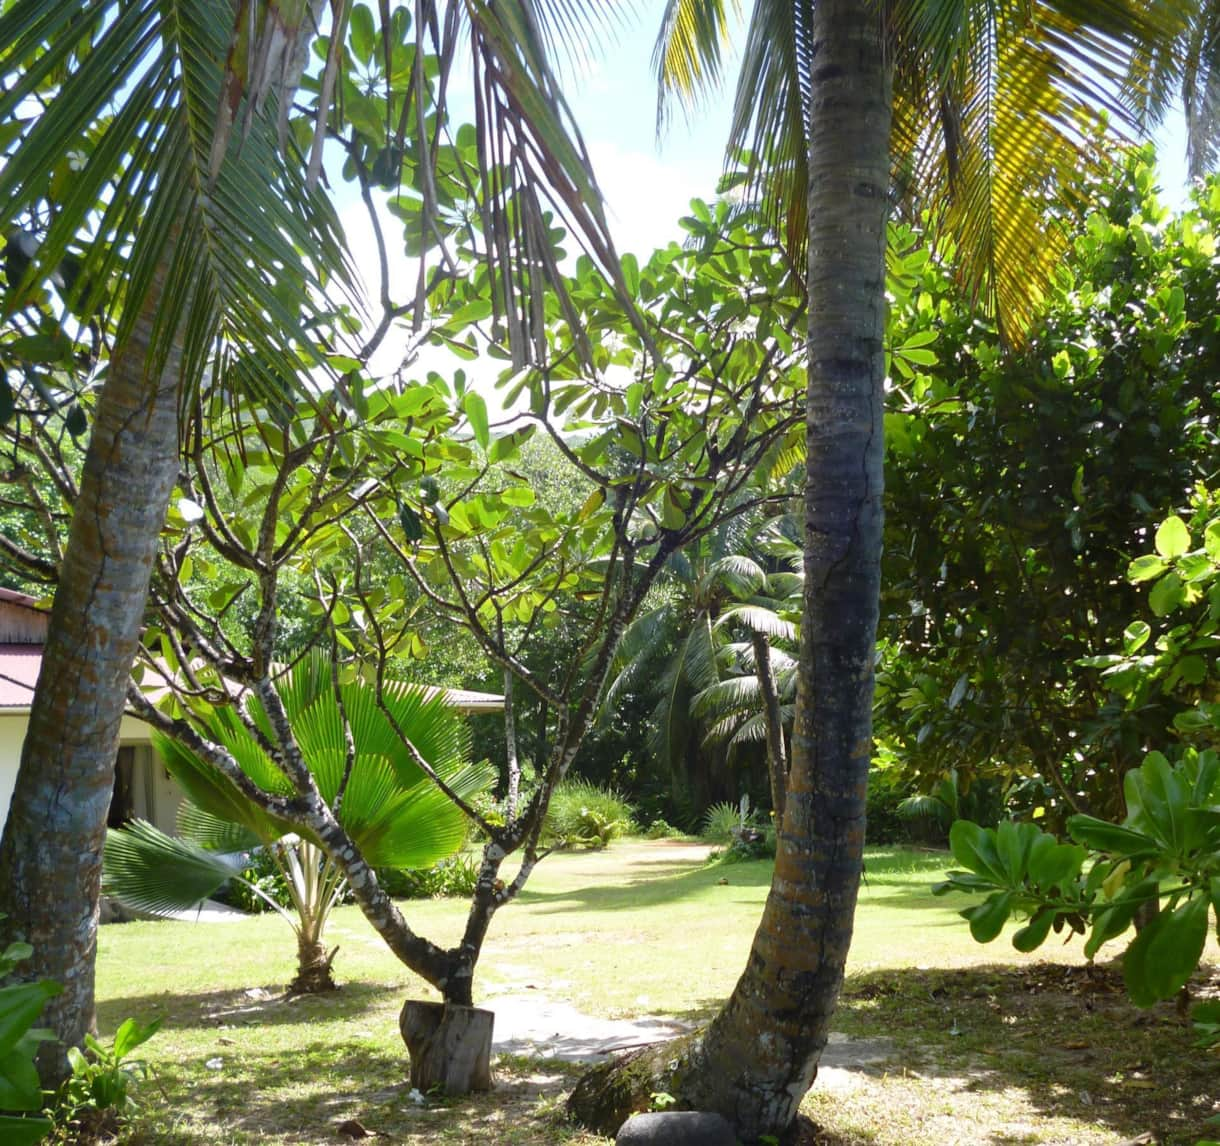 View of the Garden from the Beach